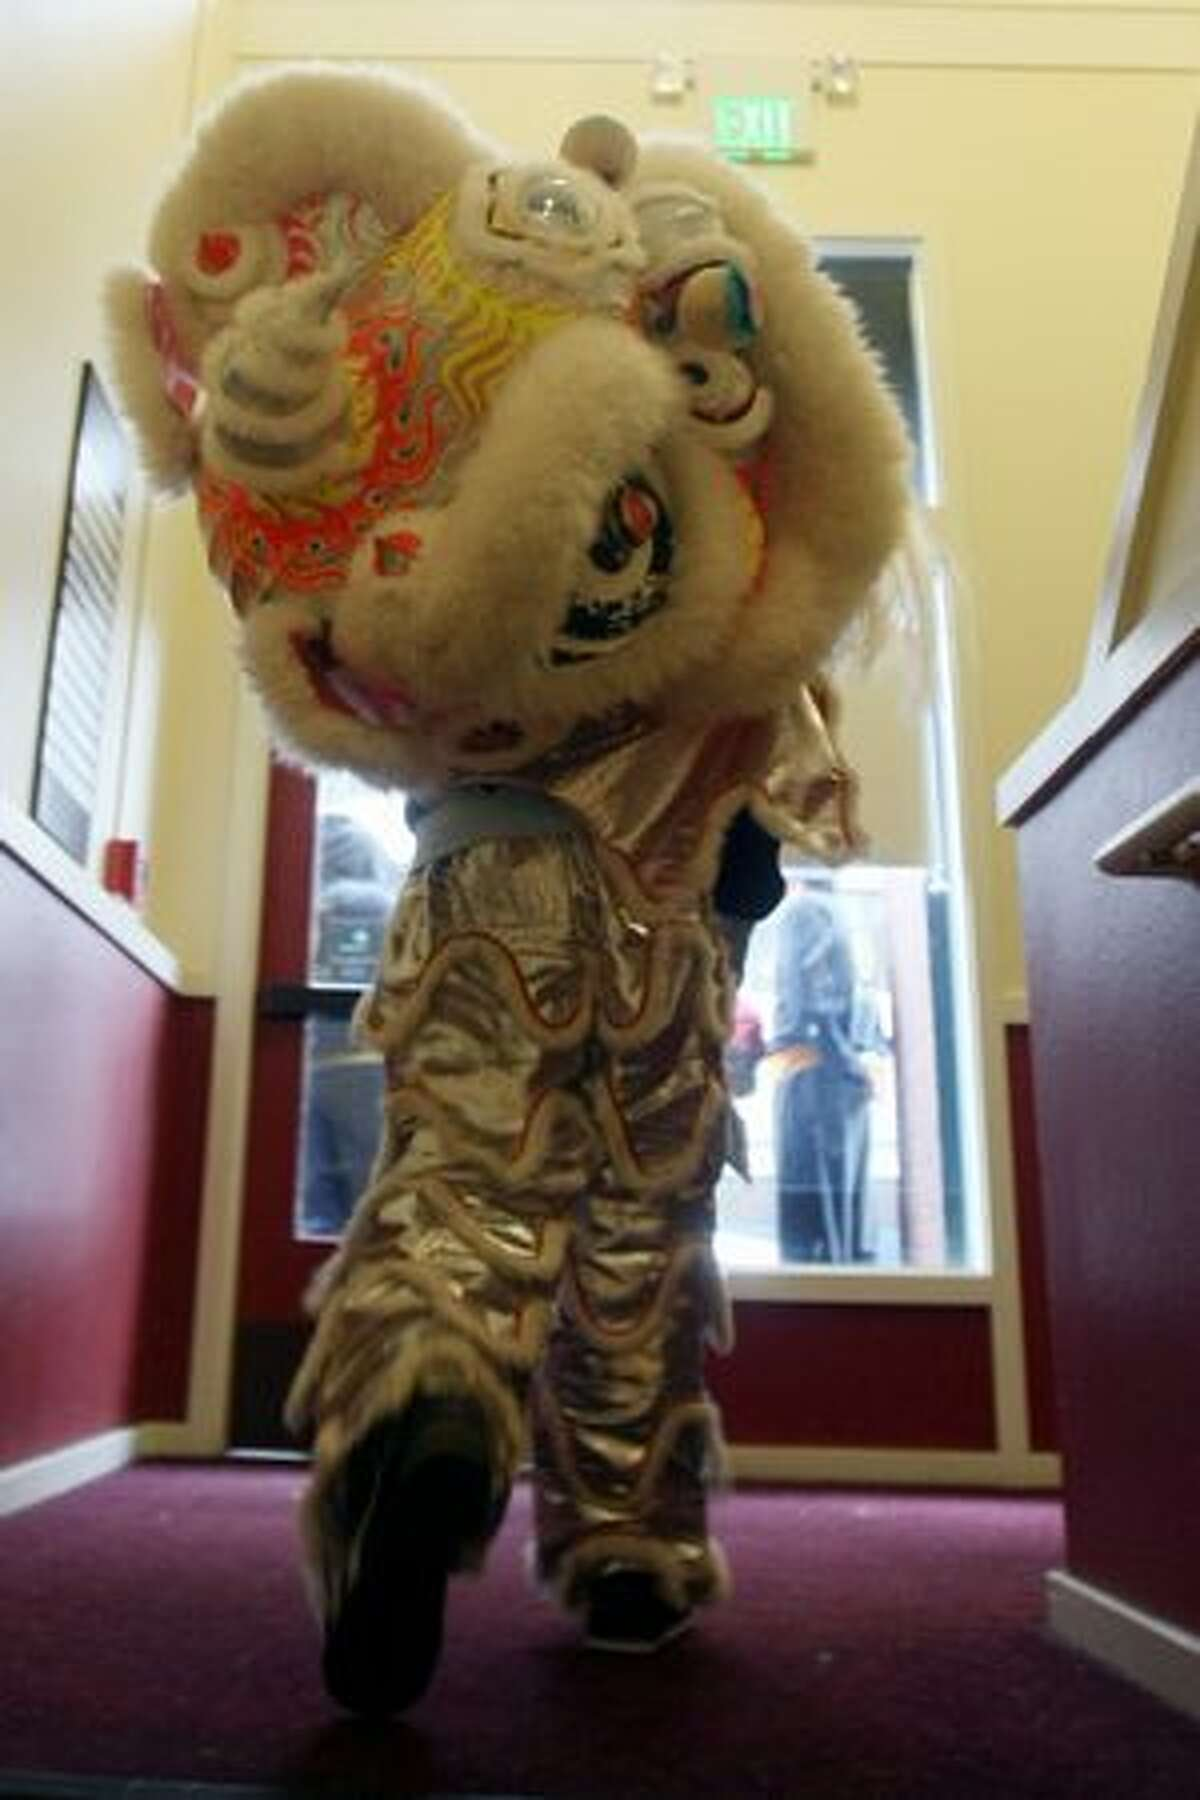 A during the Lunar New Year celebration in Seattle's International District Feb. 13, 2010.